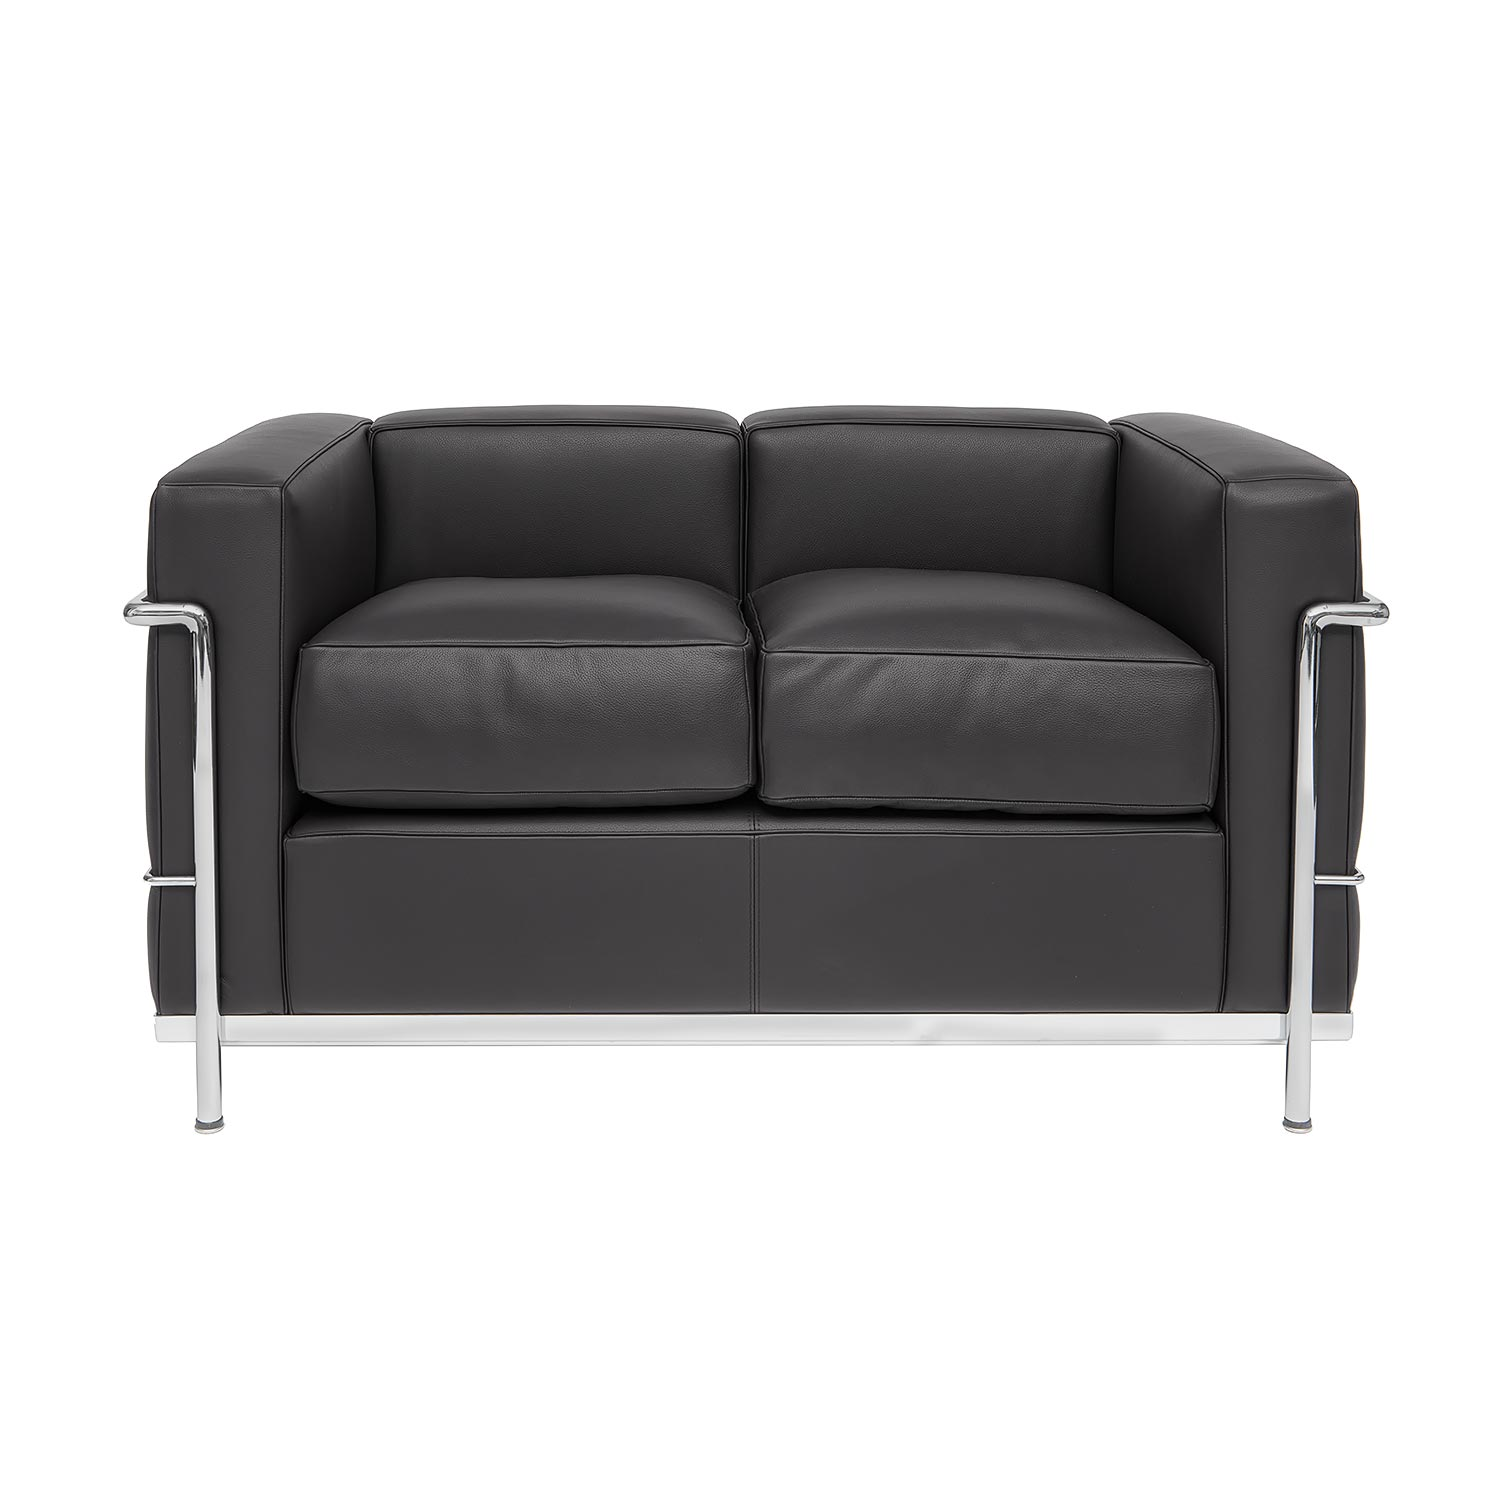 Corbusier designed sofa lc 22 steelform design classics for Le corbusier sofa